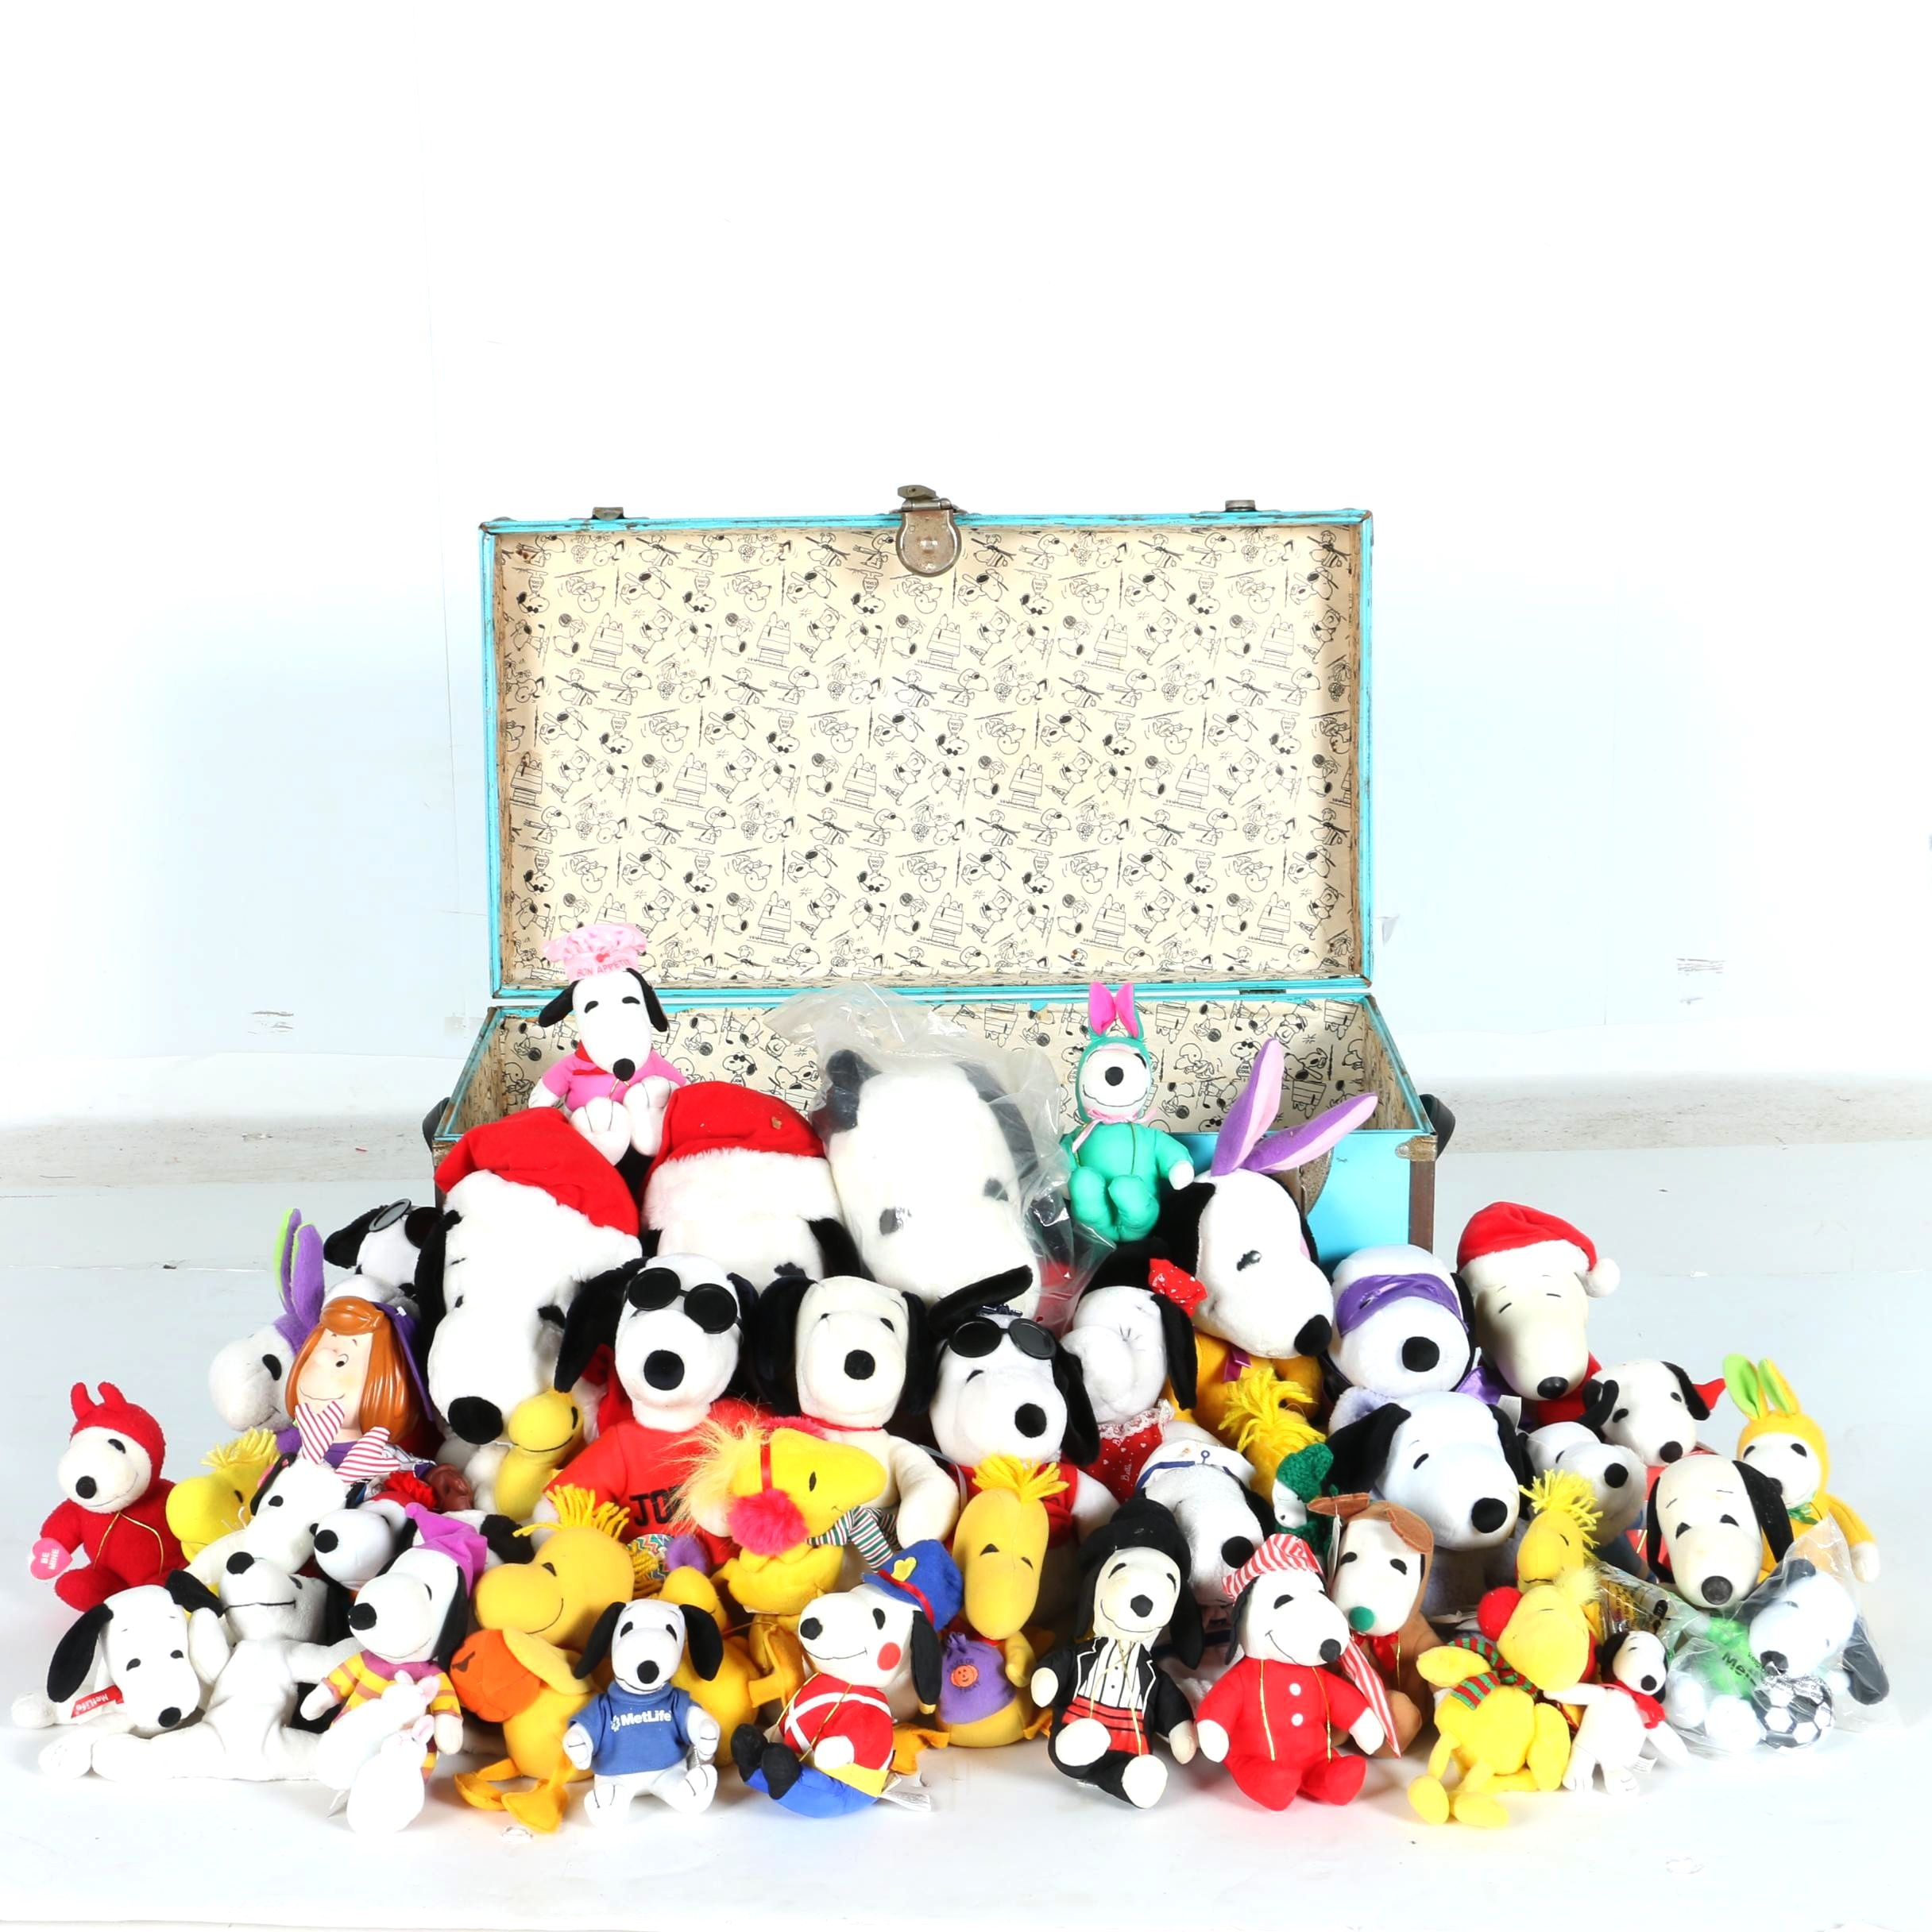 Peanuts Toy Chest With Stuffed Peanuts Characters Ebth